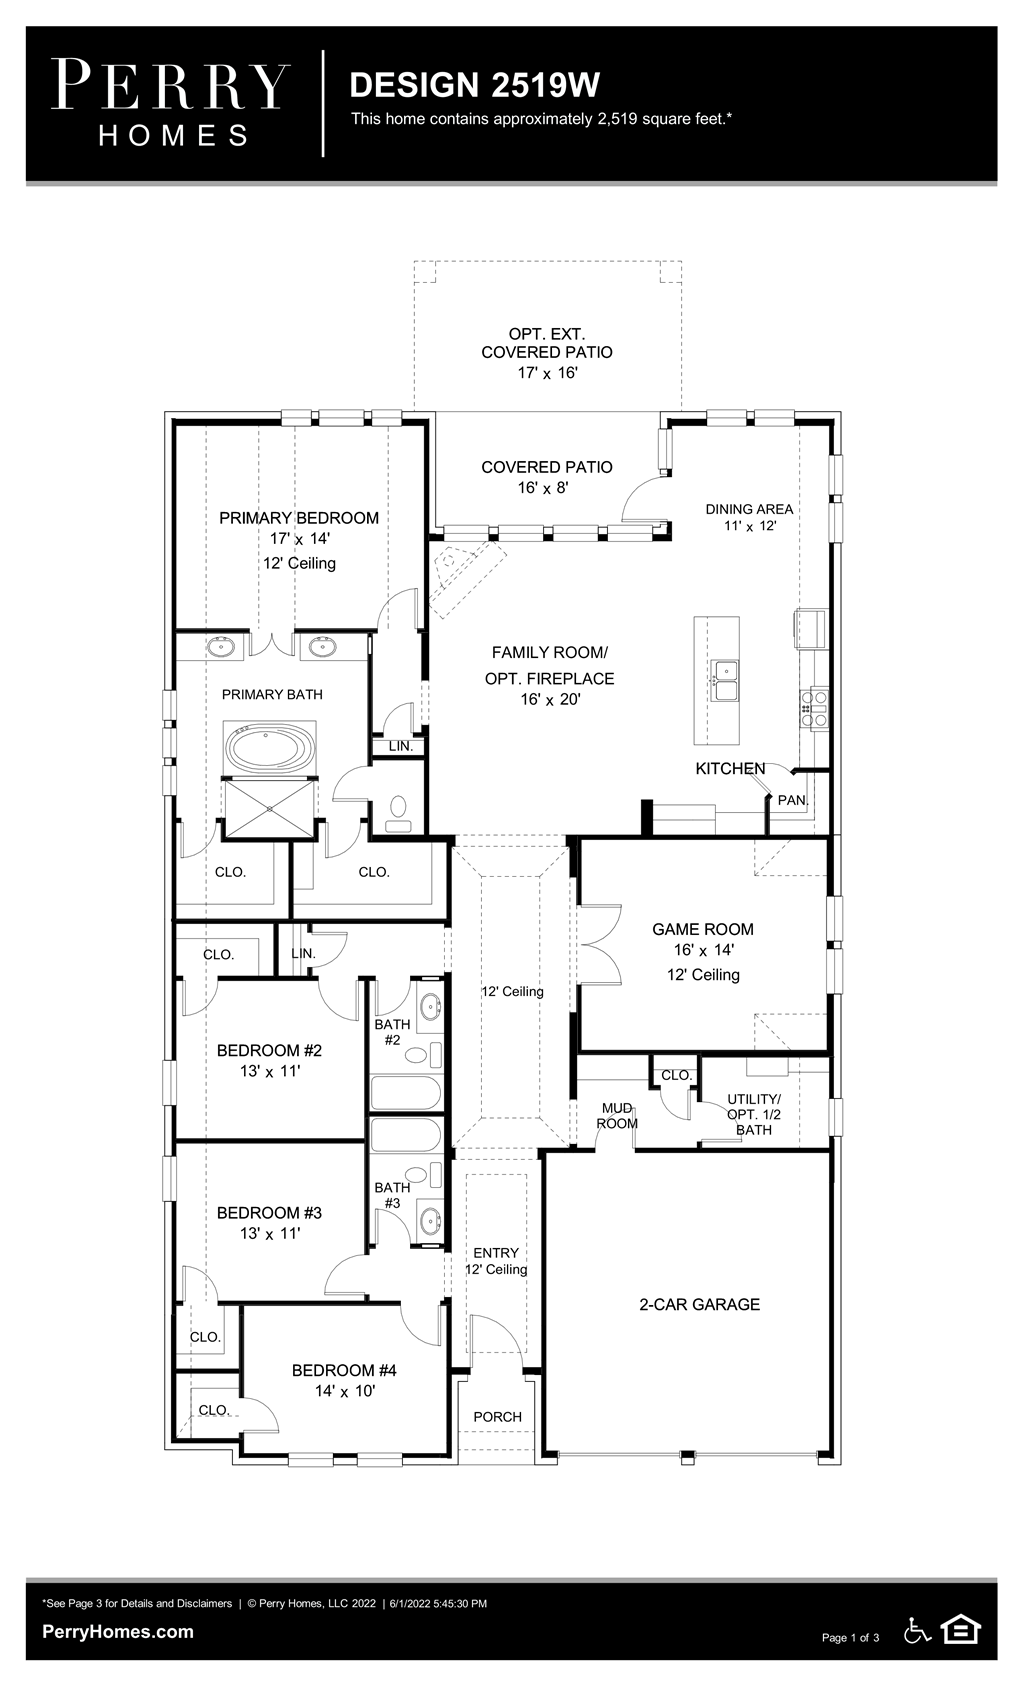 Floor Plan for 2519W